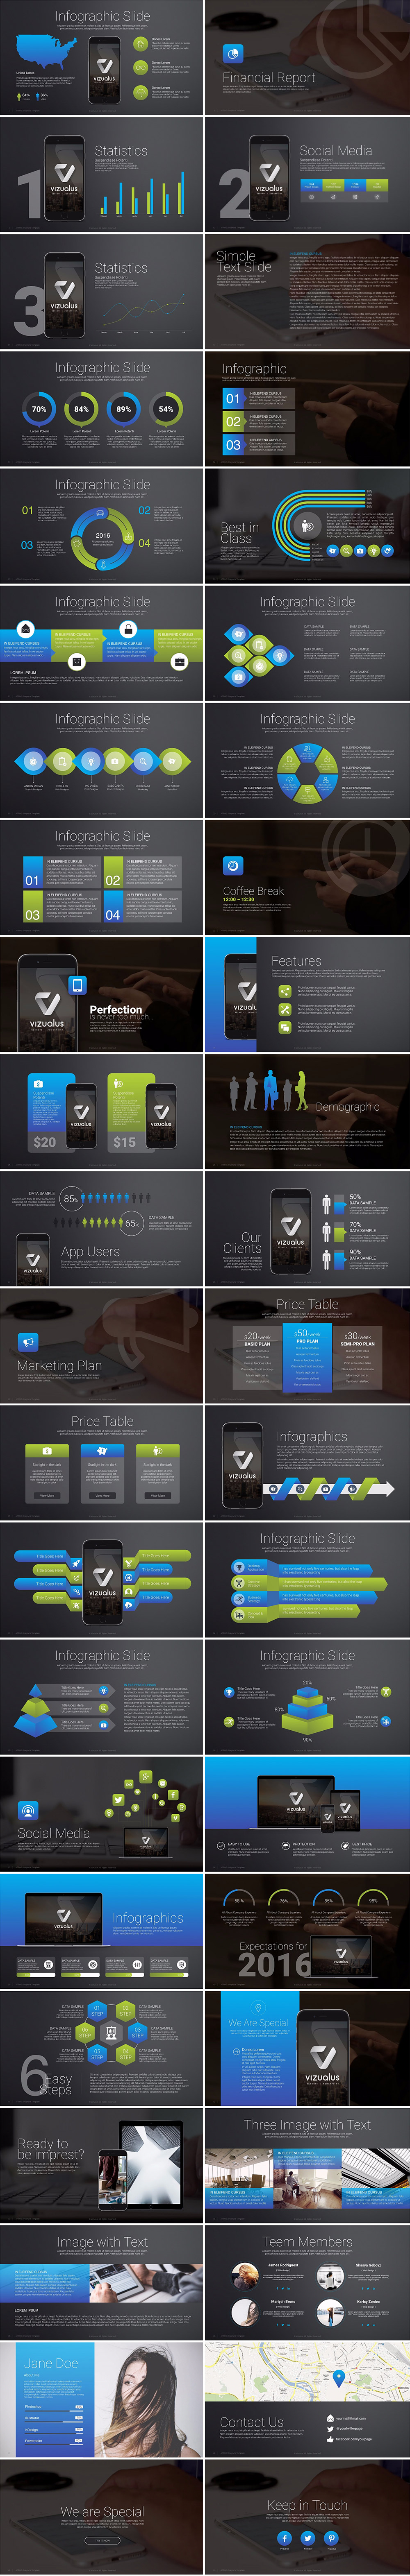 free appo 3 0 keynote template graphicsfuel